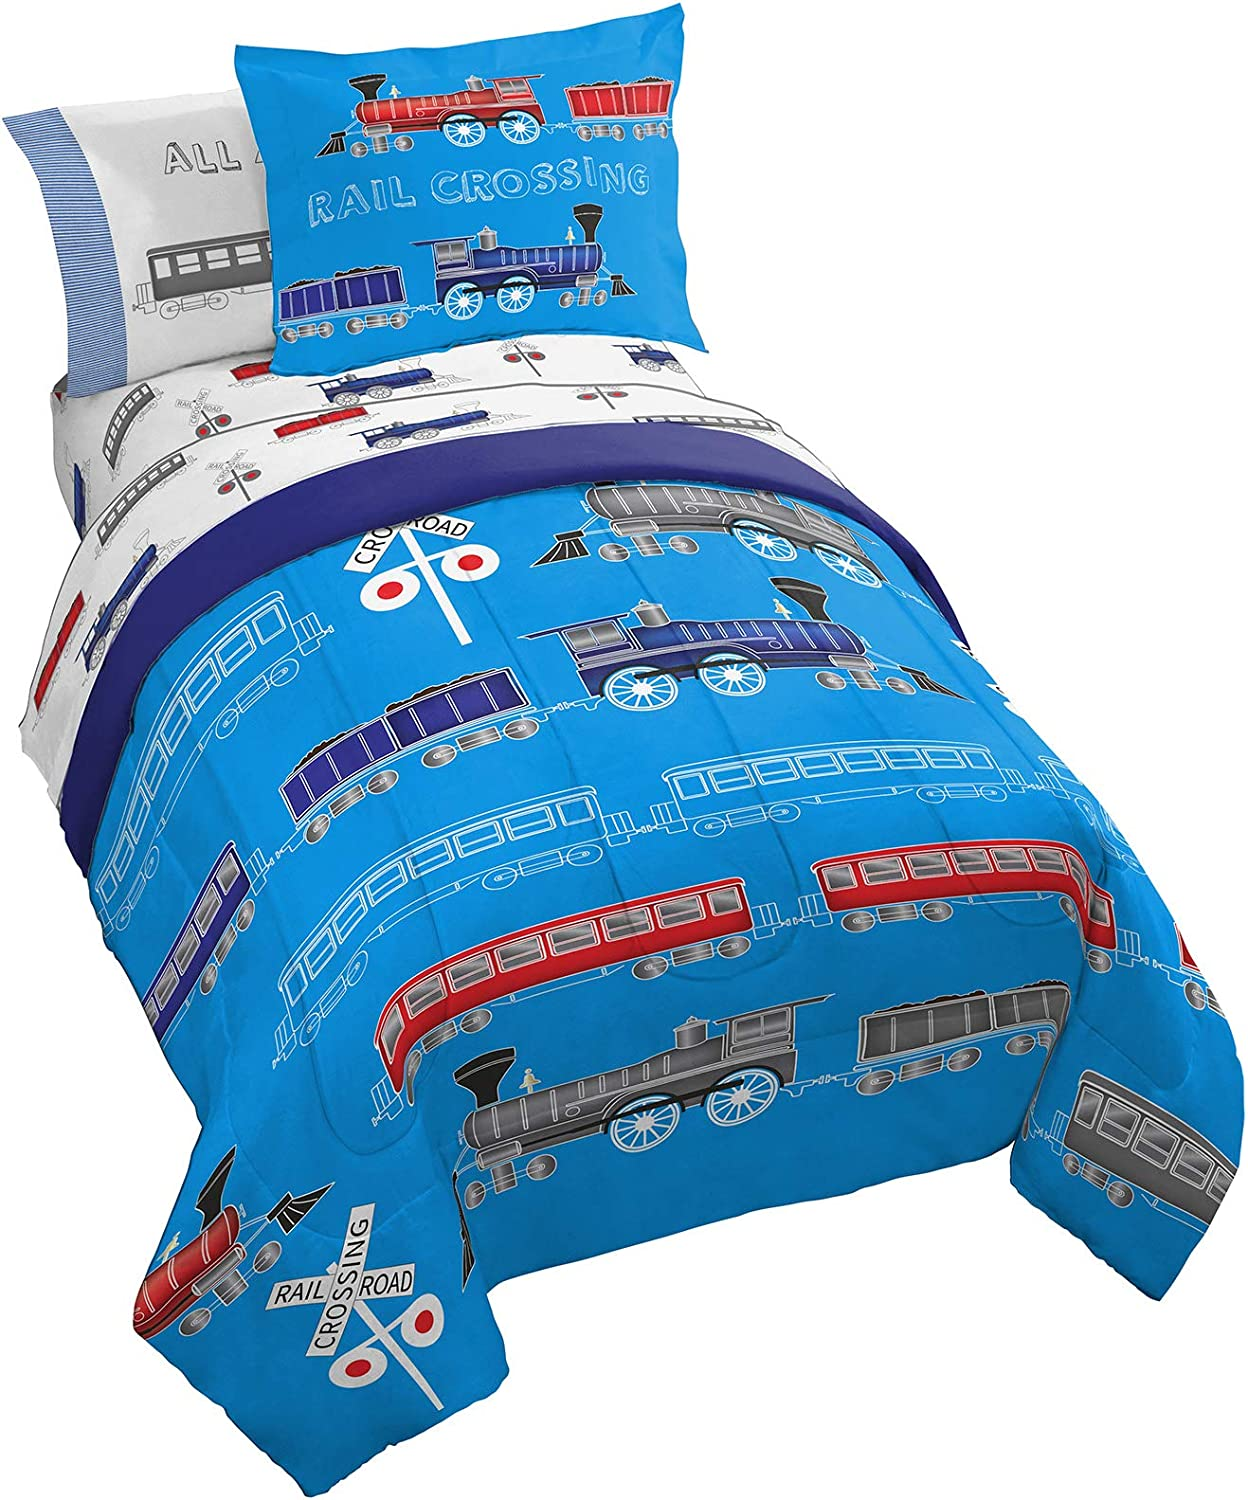 Jay Franco Trend Collector All Aboard 5 2021 Inc - Twin Bed Piece Set Inexpensive